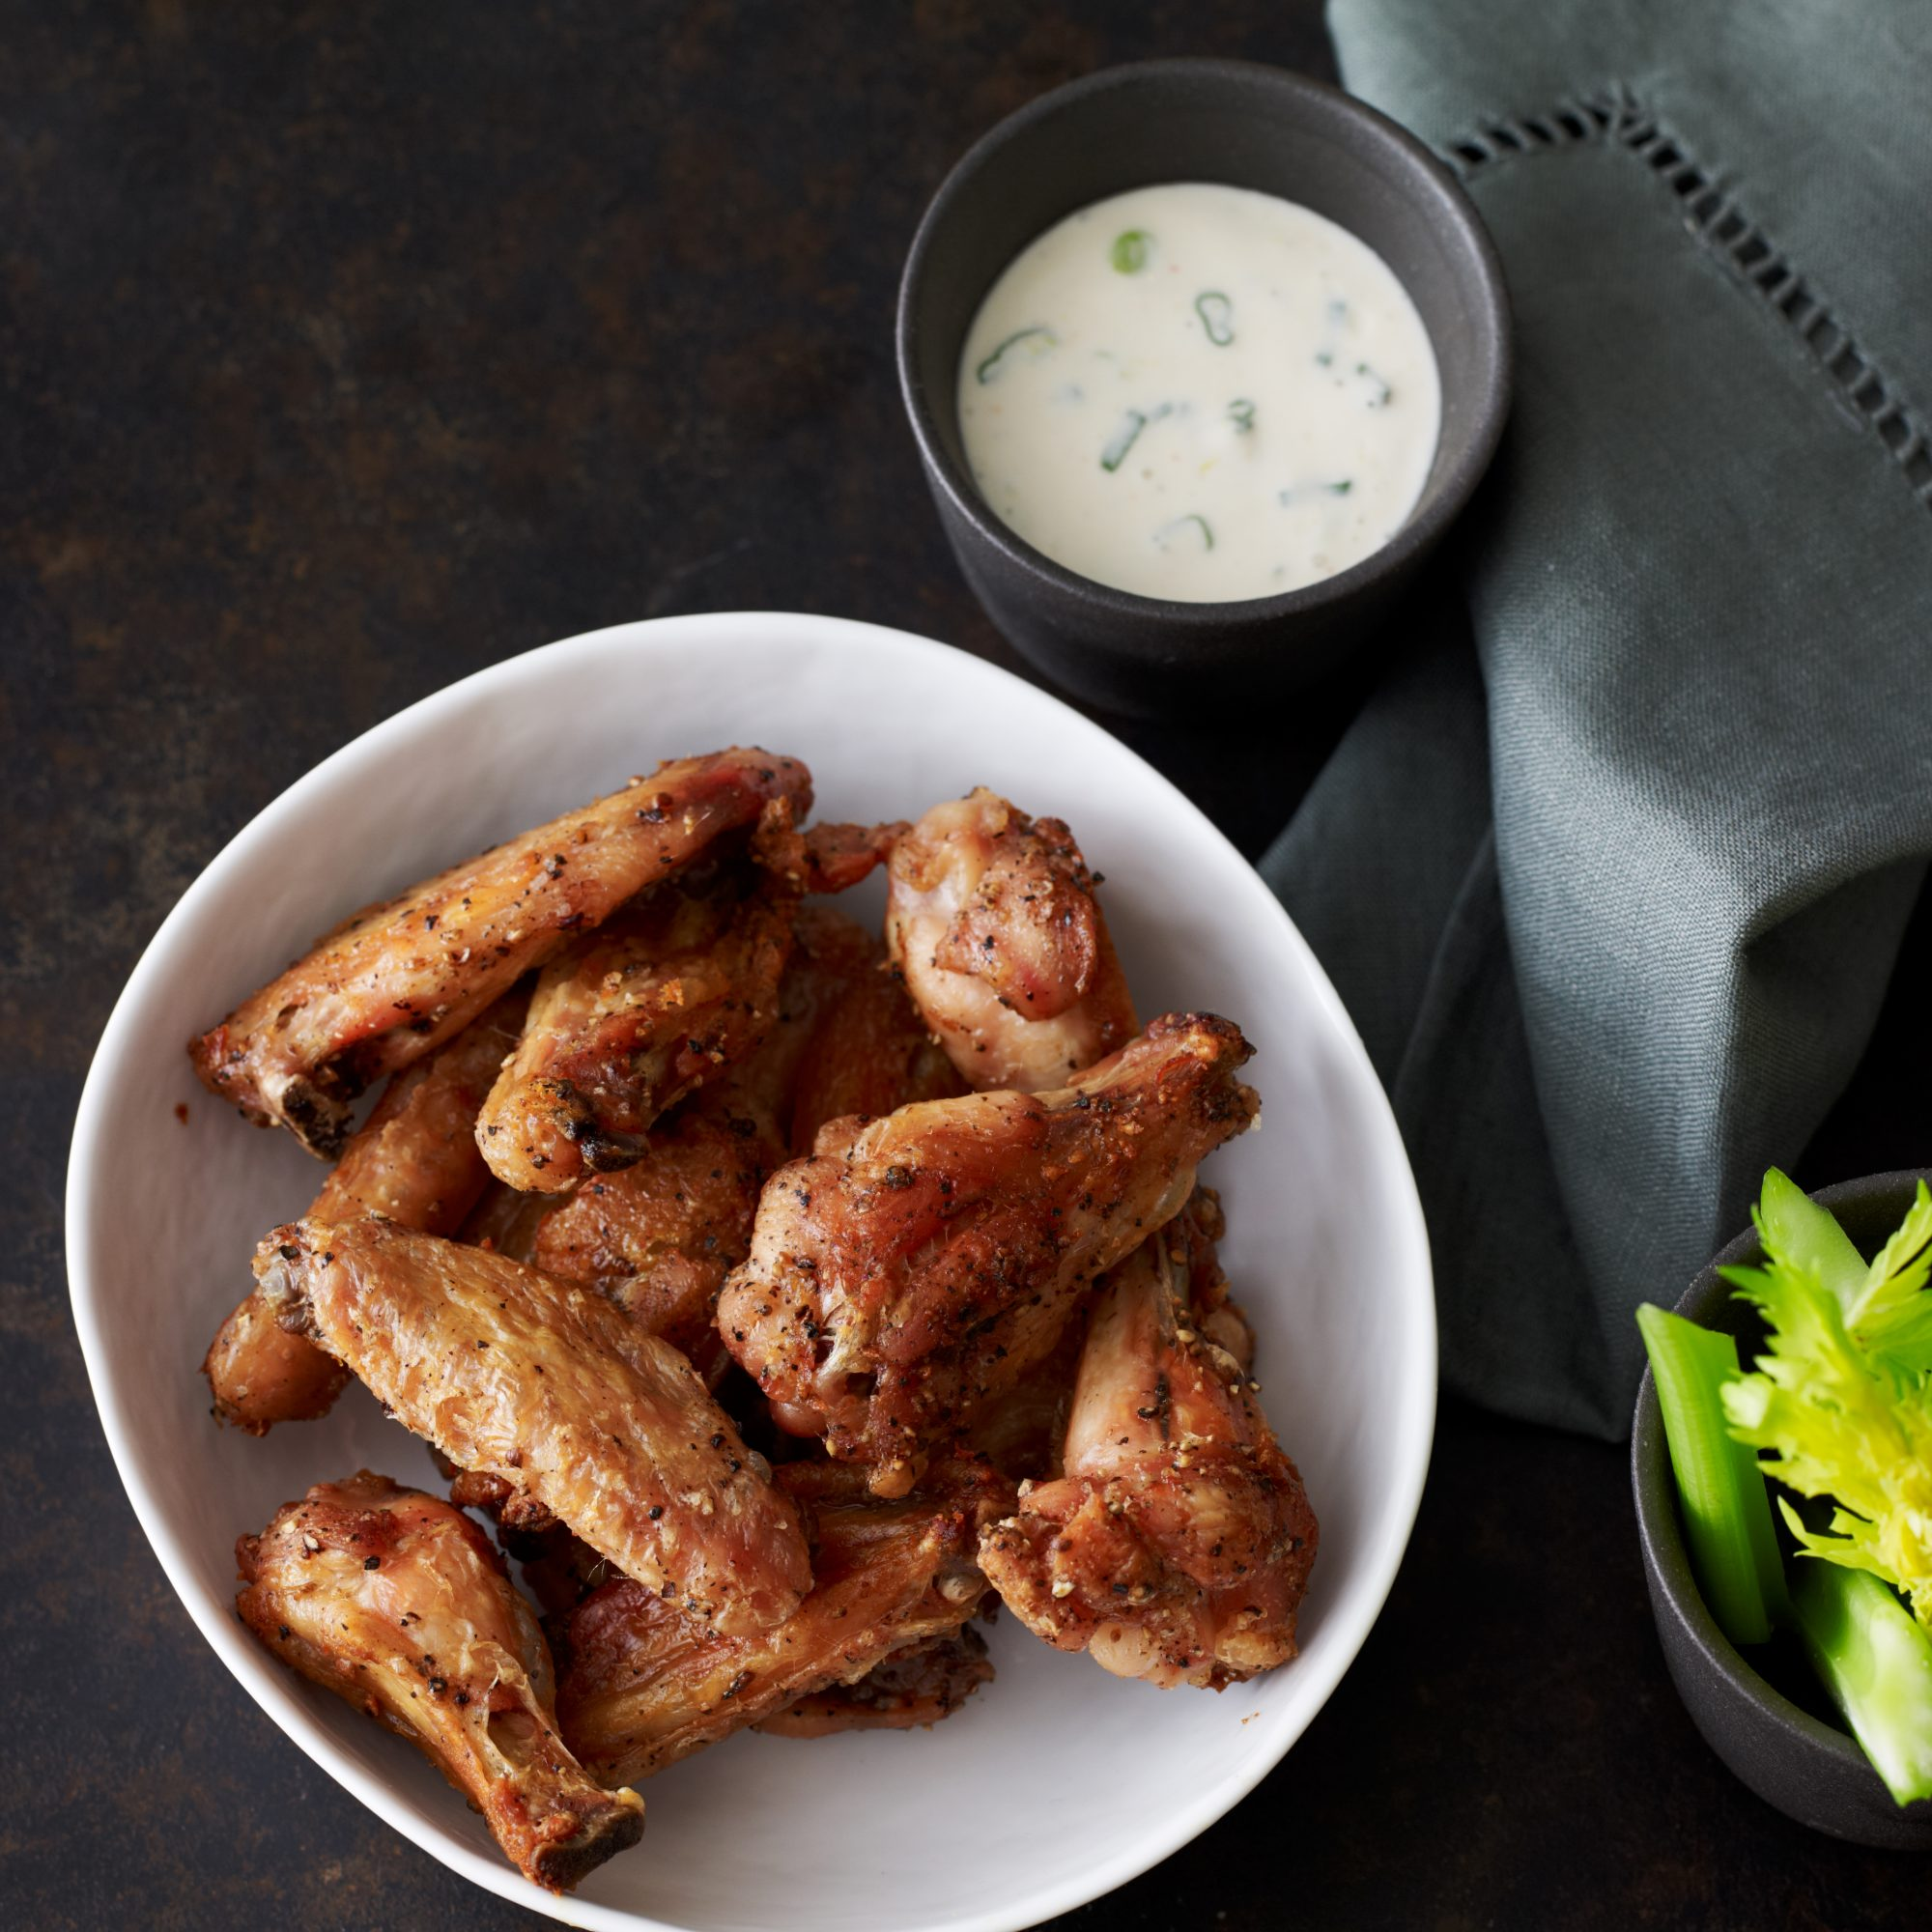 images-sys-201202-r-pepper-and-salt-chicken-wings.jpg